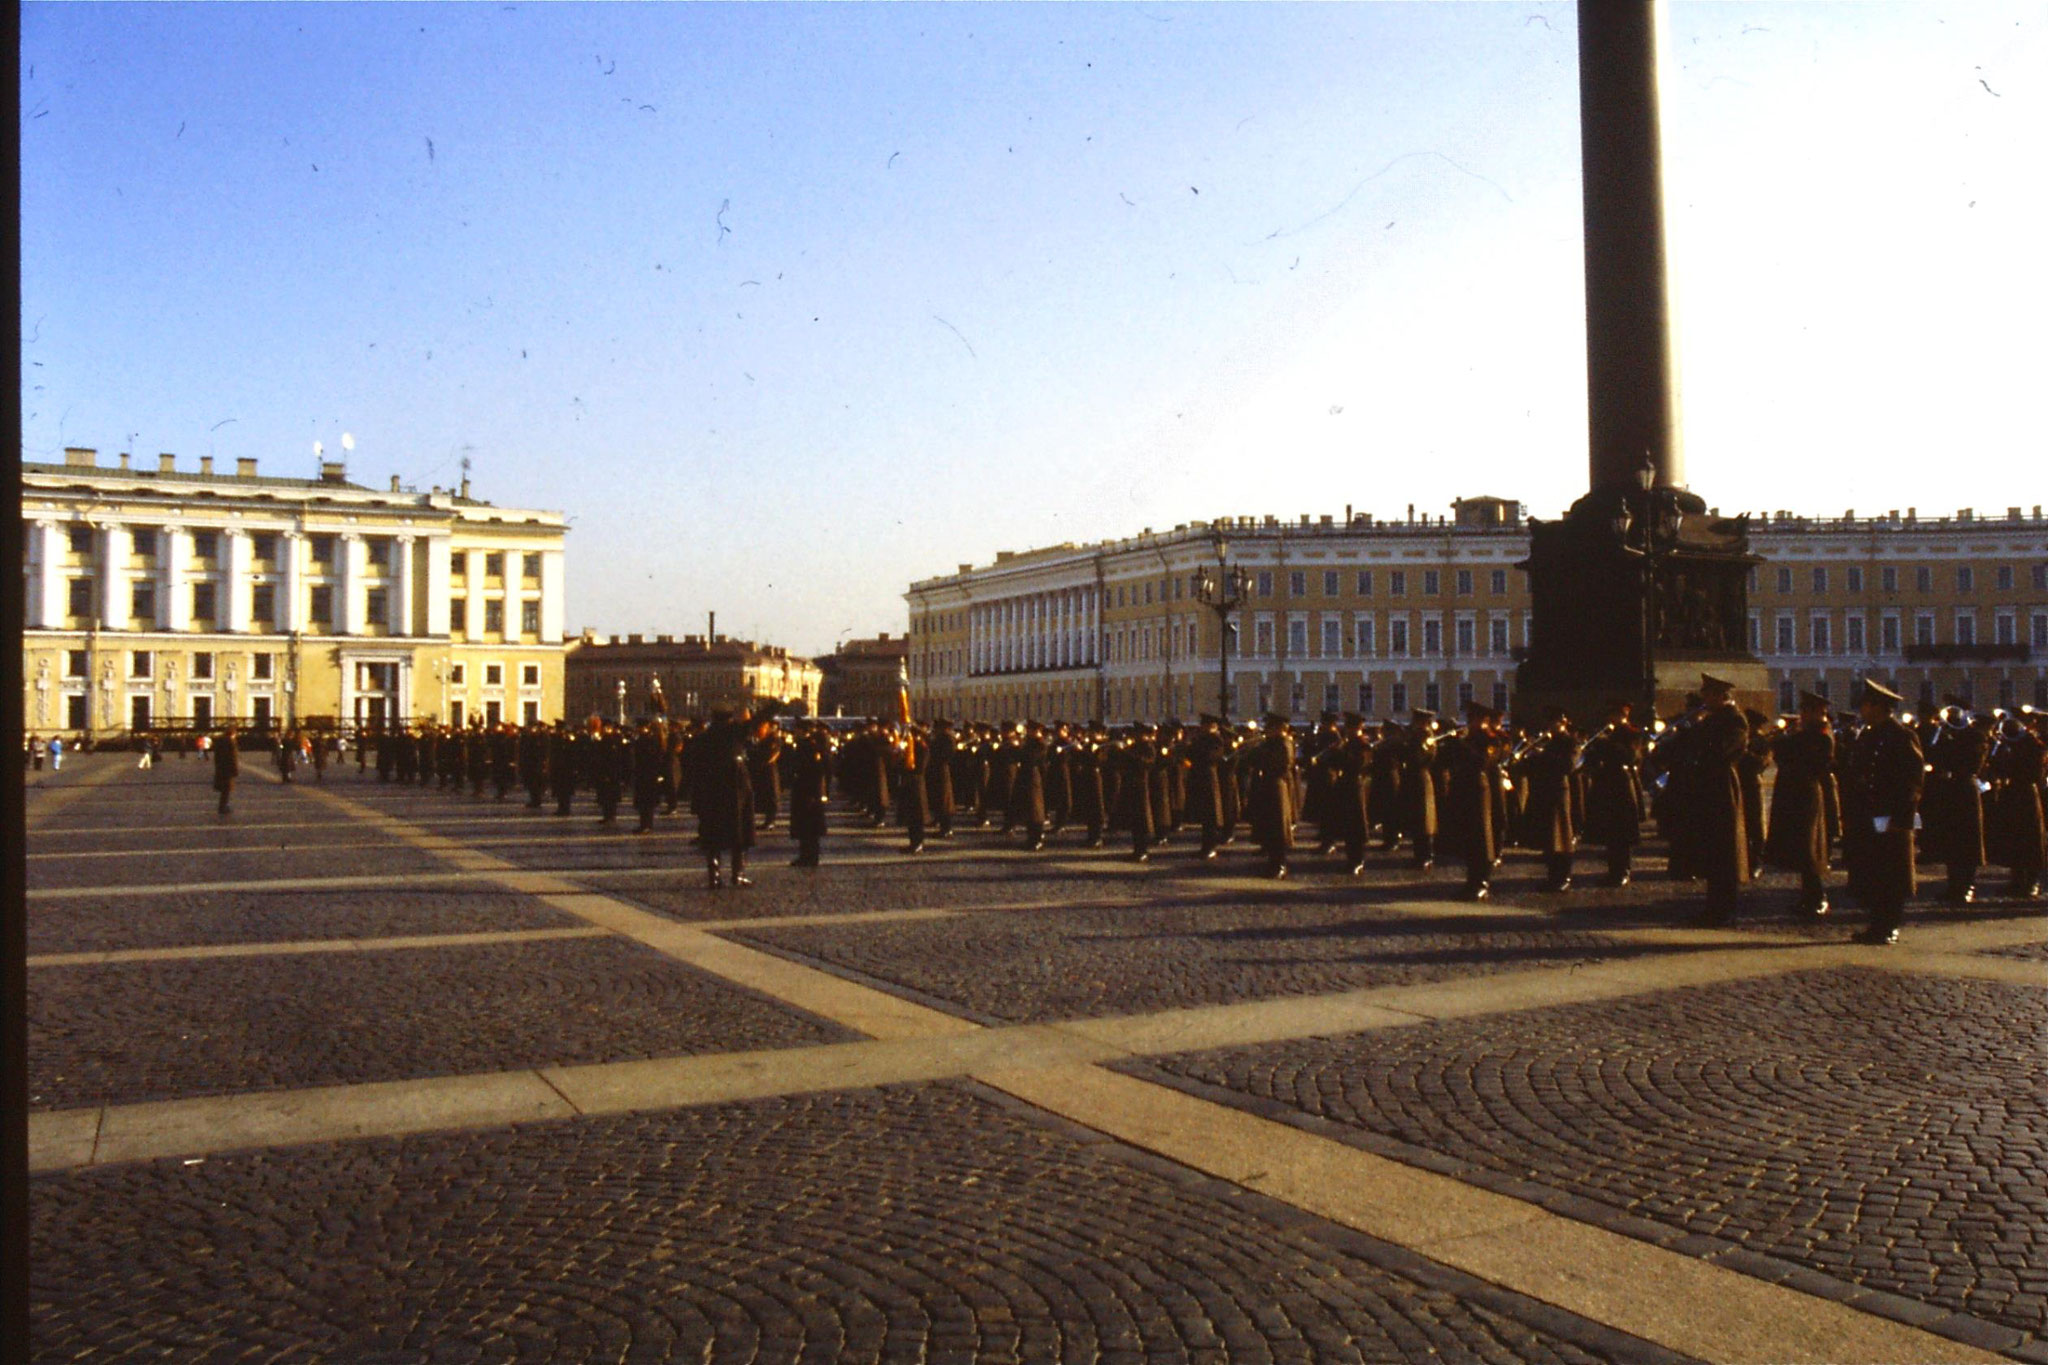 13/10/1988: 18:  Leningrad band in front of Hermitage